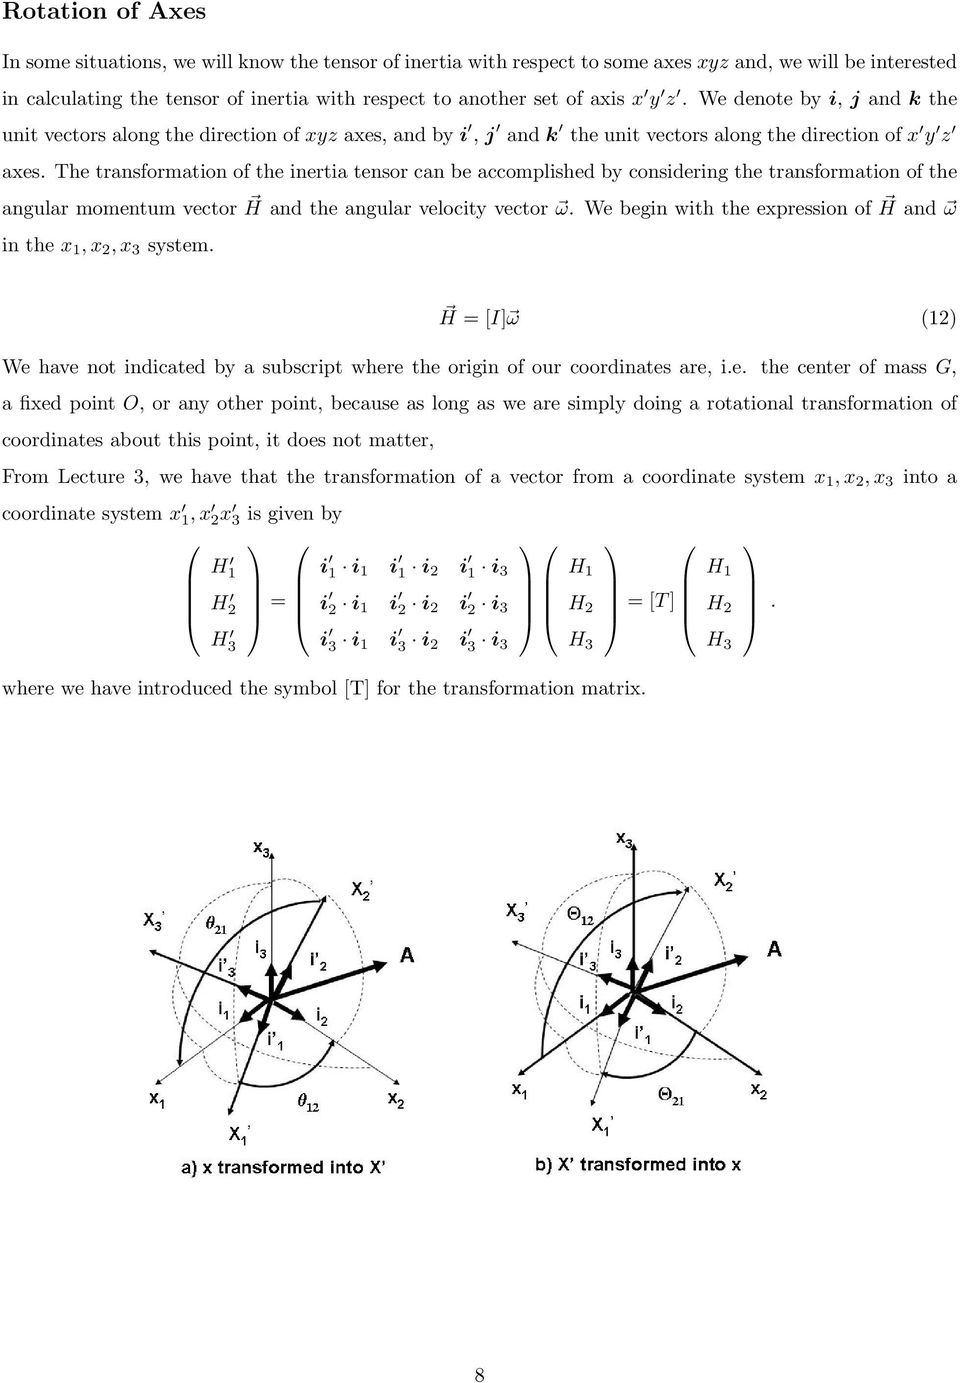 The transforation of the inertia tensor can be accoplished by considering the transforation of the angular oentu vector H and the angular velocity vector ω.